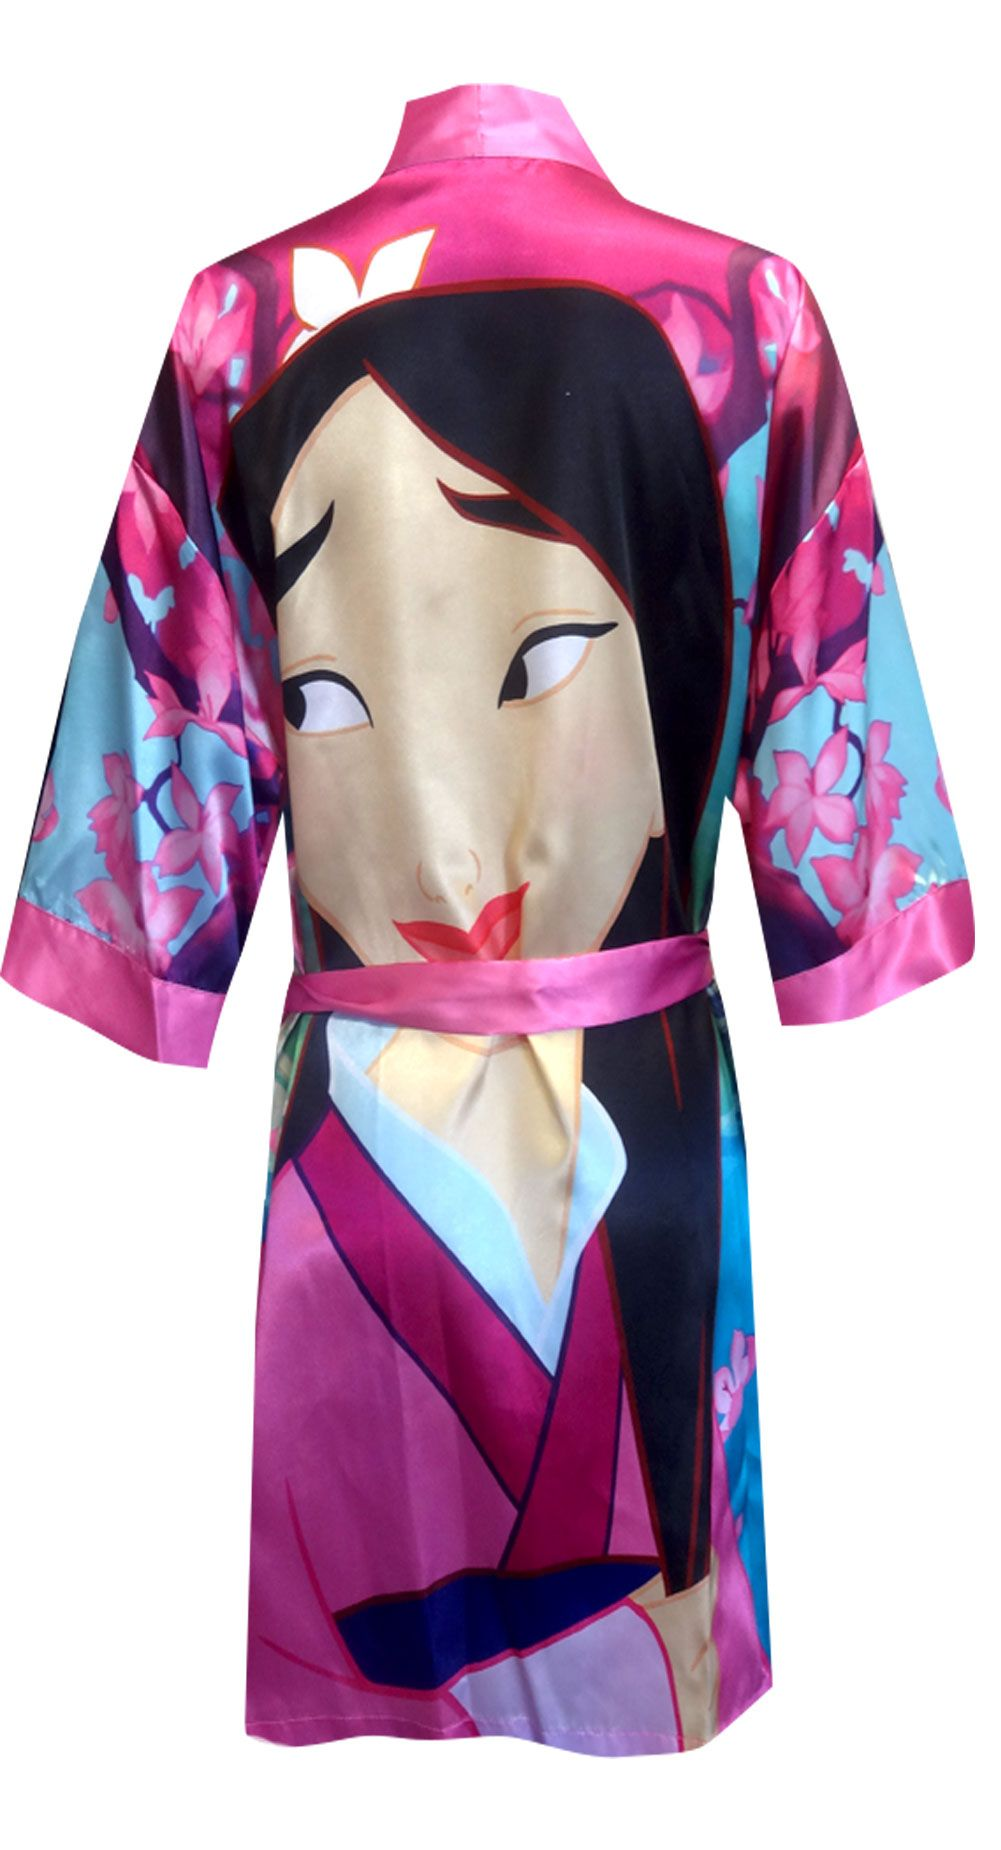 ac36cd3c43 Disney Mulan Satin Robe Beautiful and special! This gorgeous satin robe for  ladies features Mulan